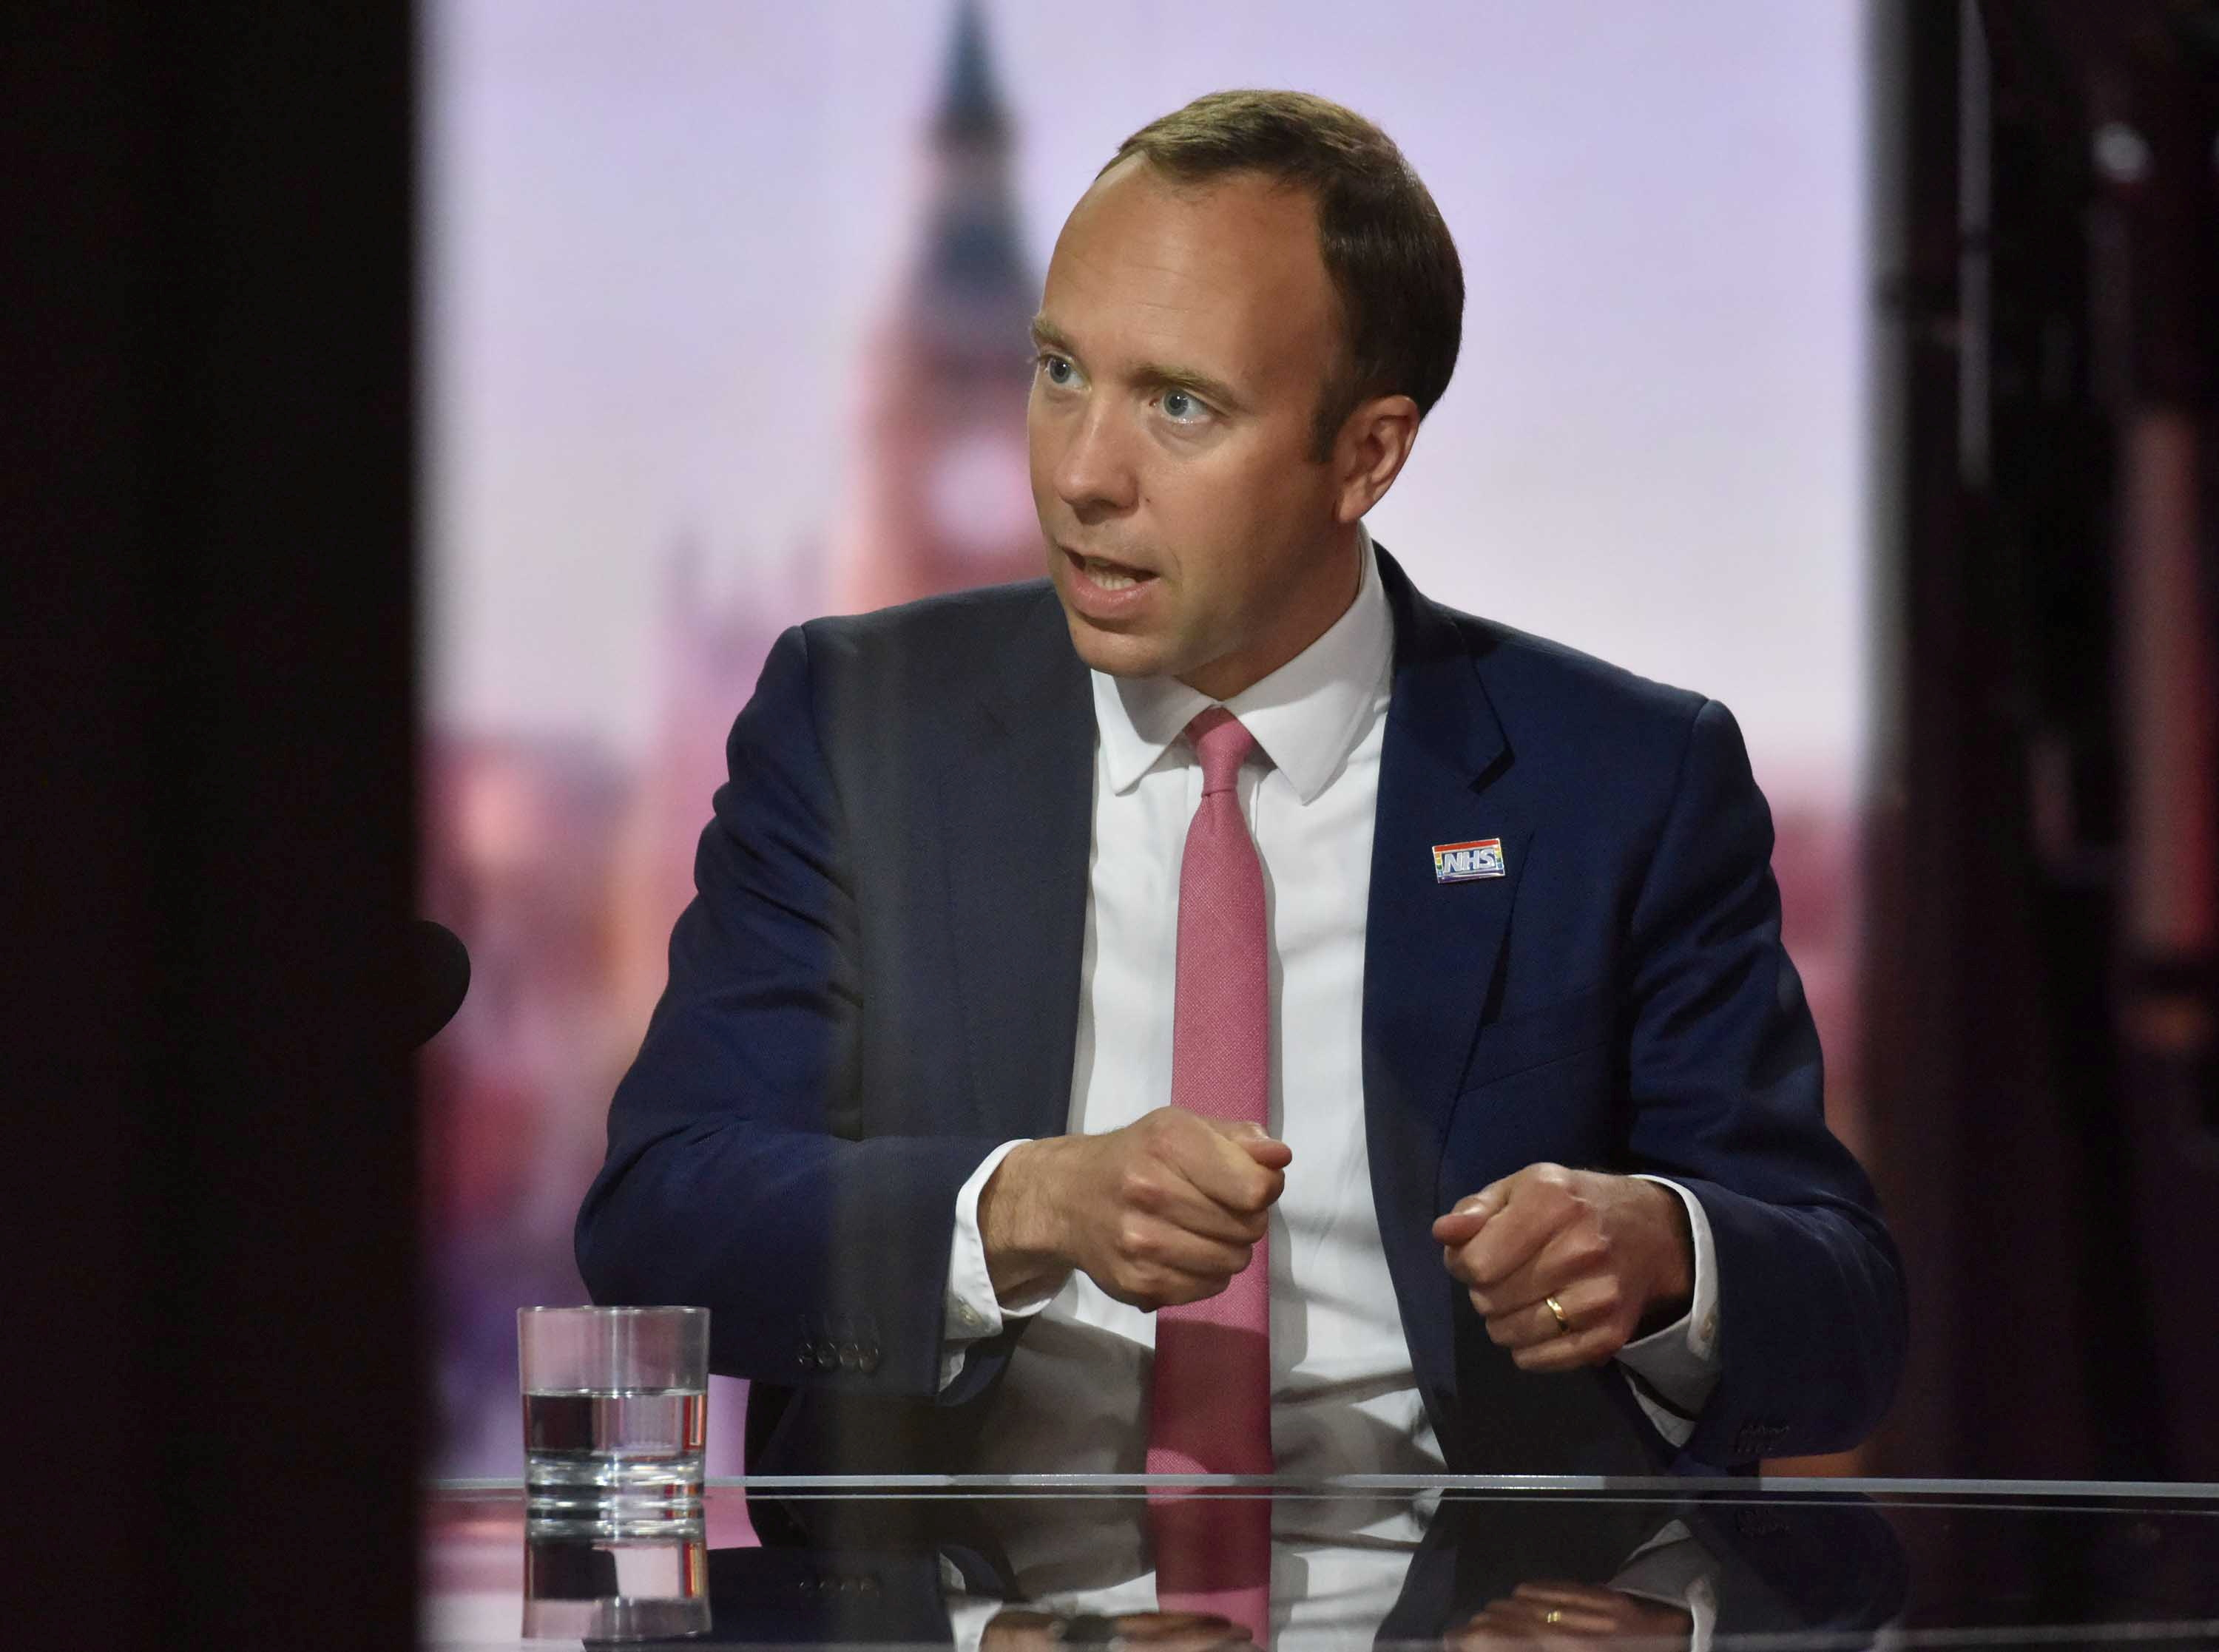 UK health minister defends COVID-19 record after allegations by former PM aide